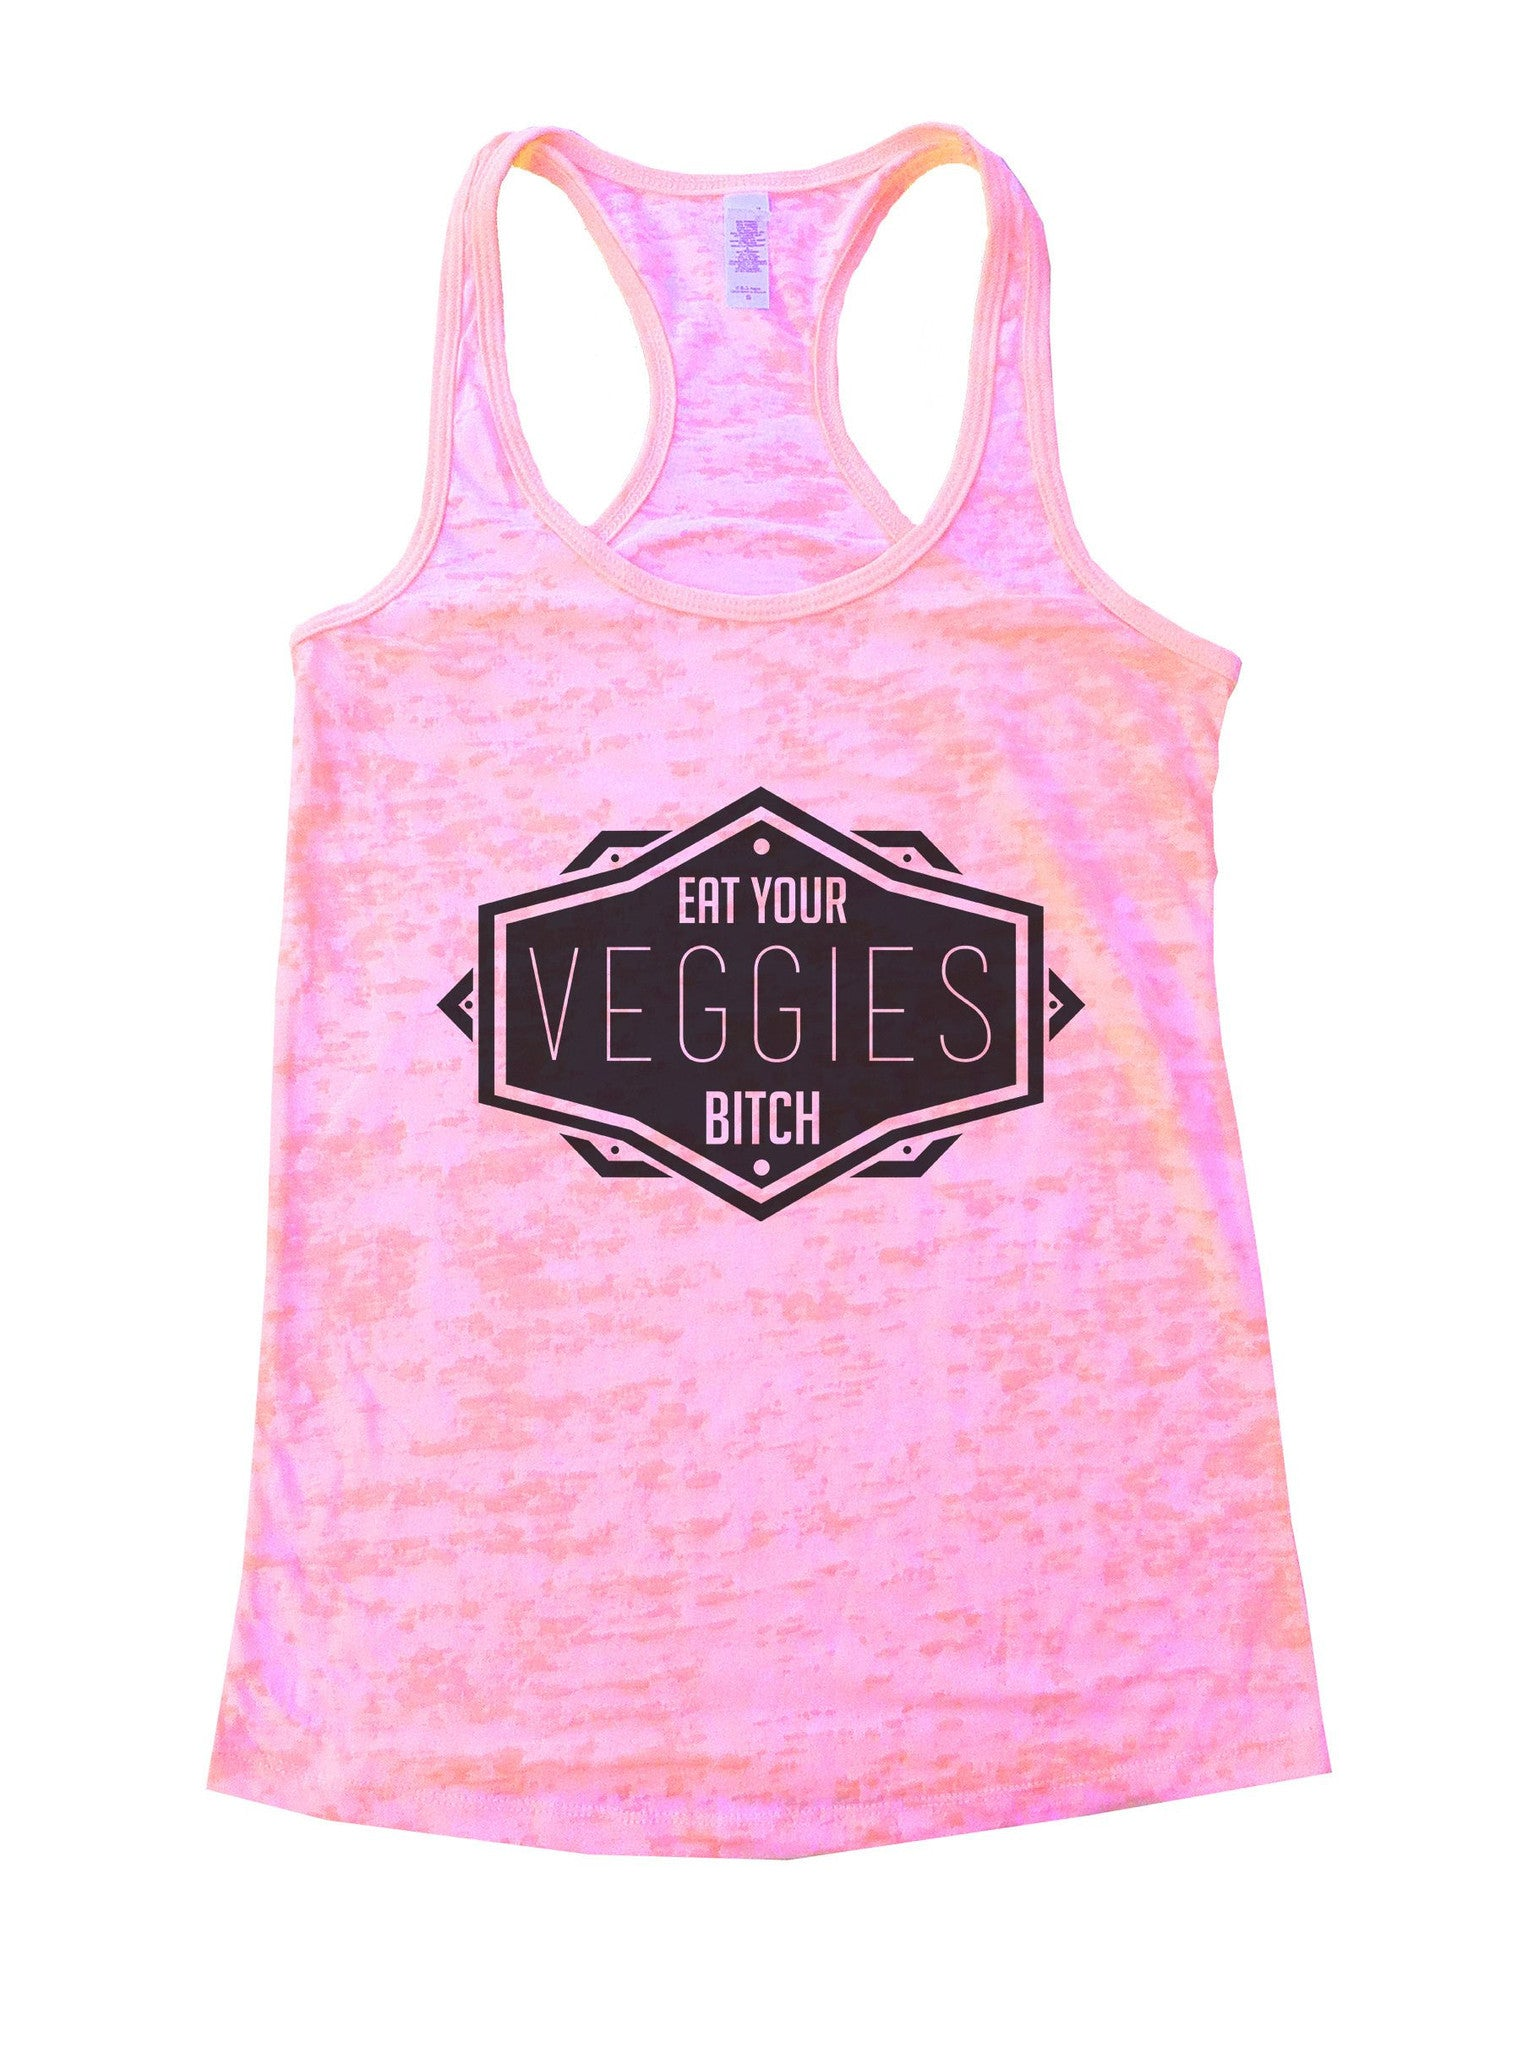 Eat Your Veggies Bitch Burnout Tank Top By BurnoutTankTops.com - 1111 - Funny Shirts Tank Tops Burnouts and Triblends  - 3